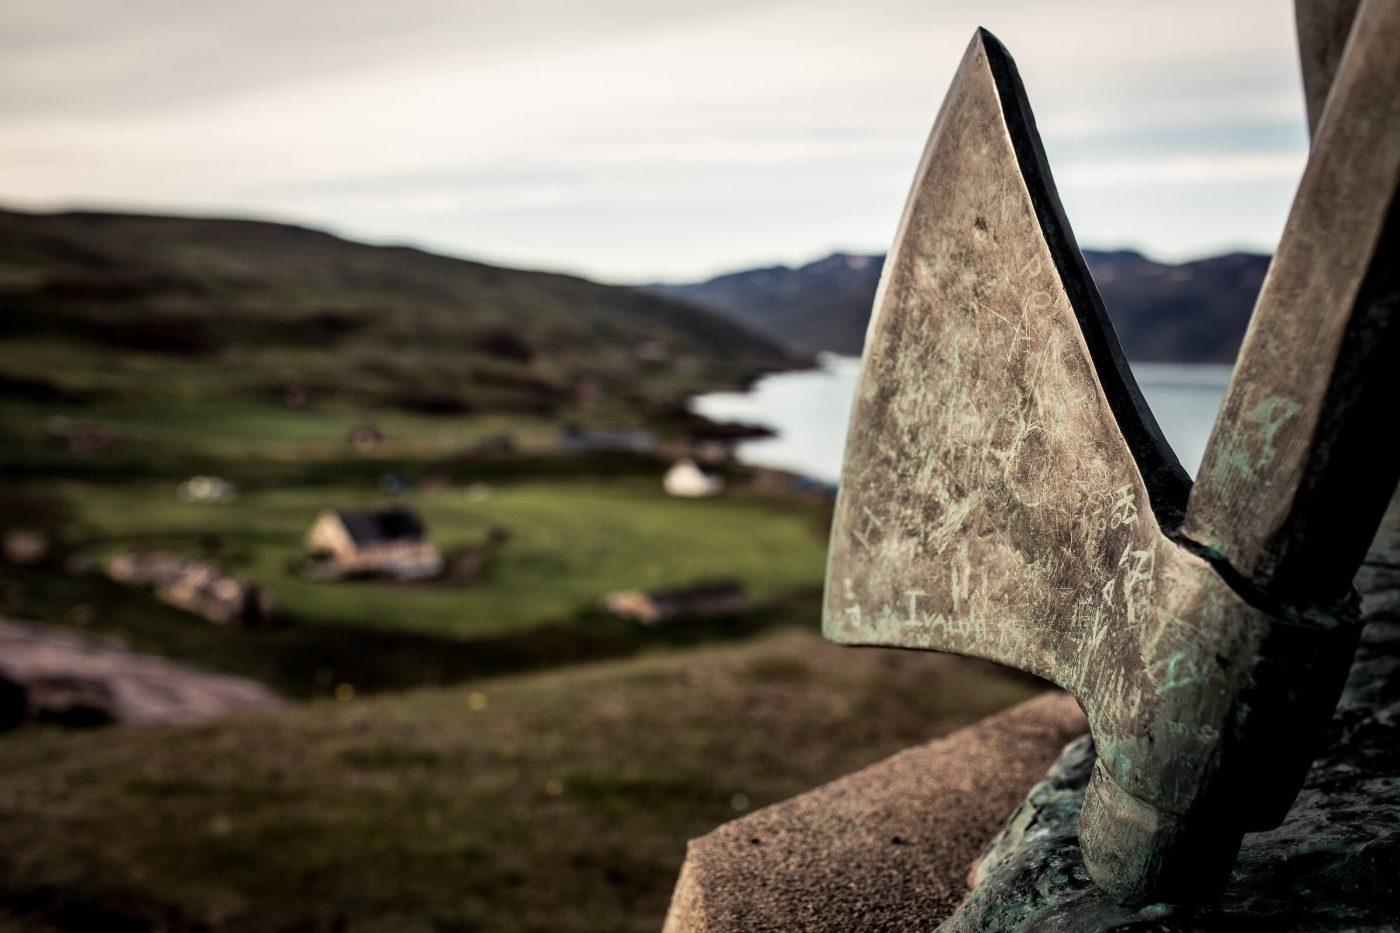 The axe of Leif Erikson - the statue overlooking Qassiarsuk in South Greenland. By Mads Pihl